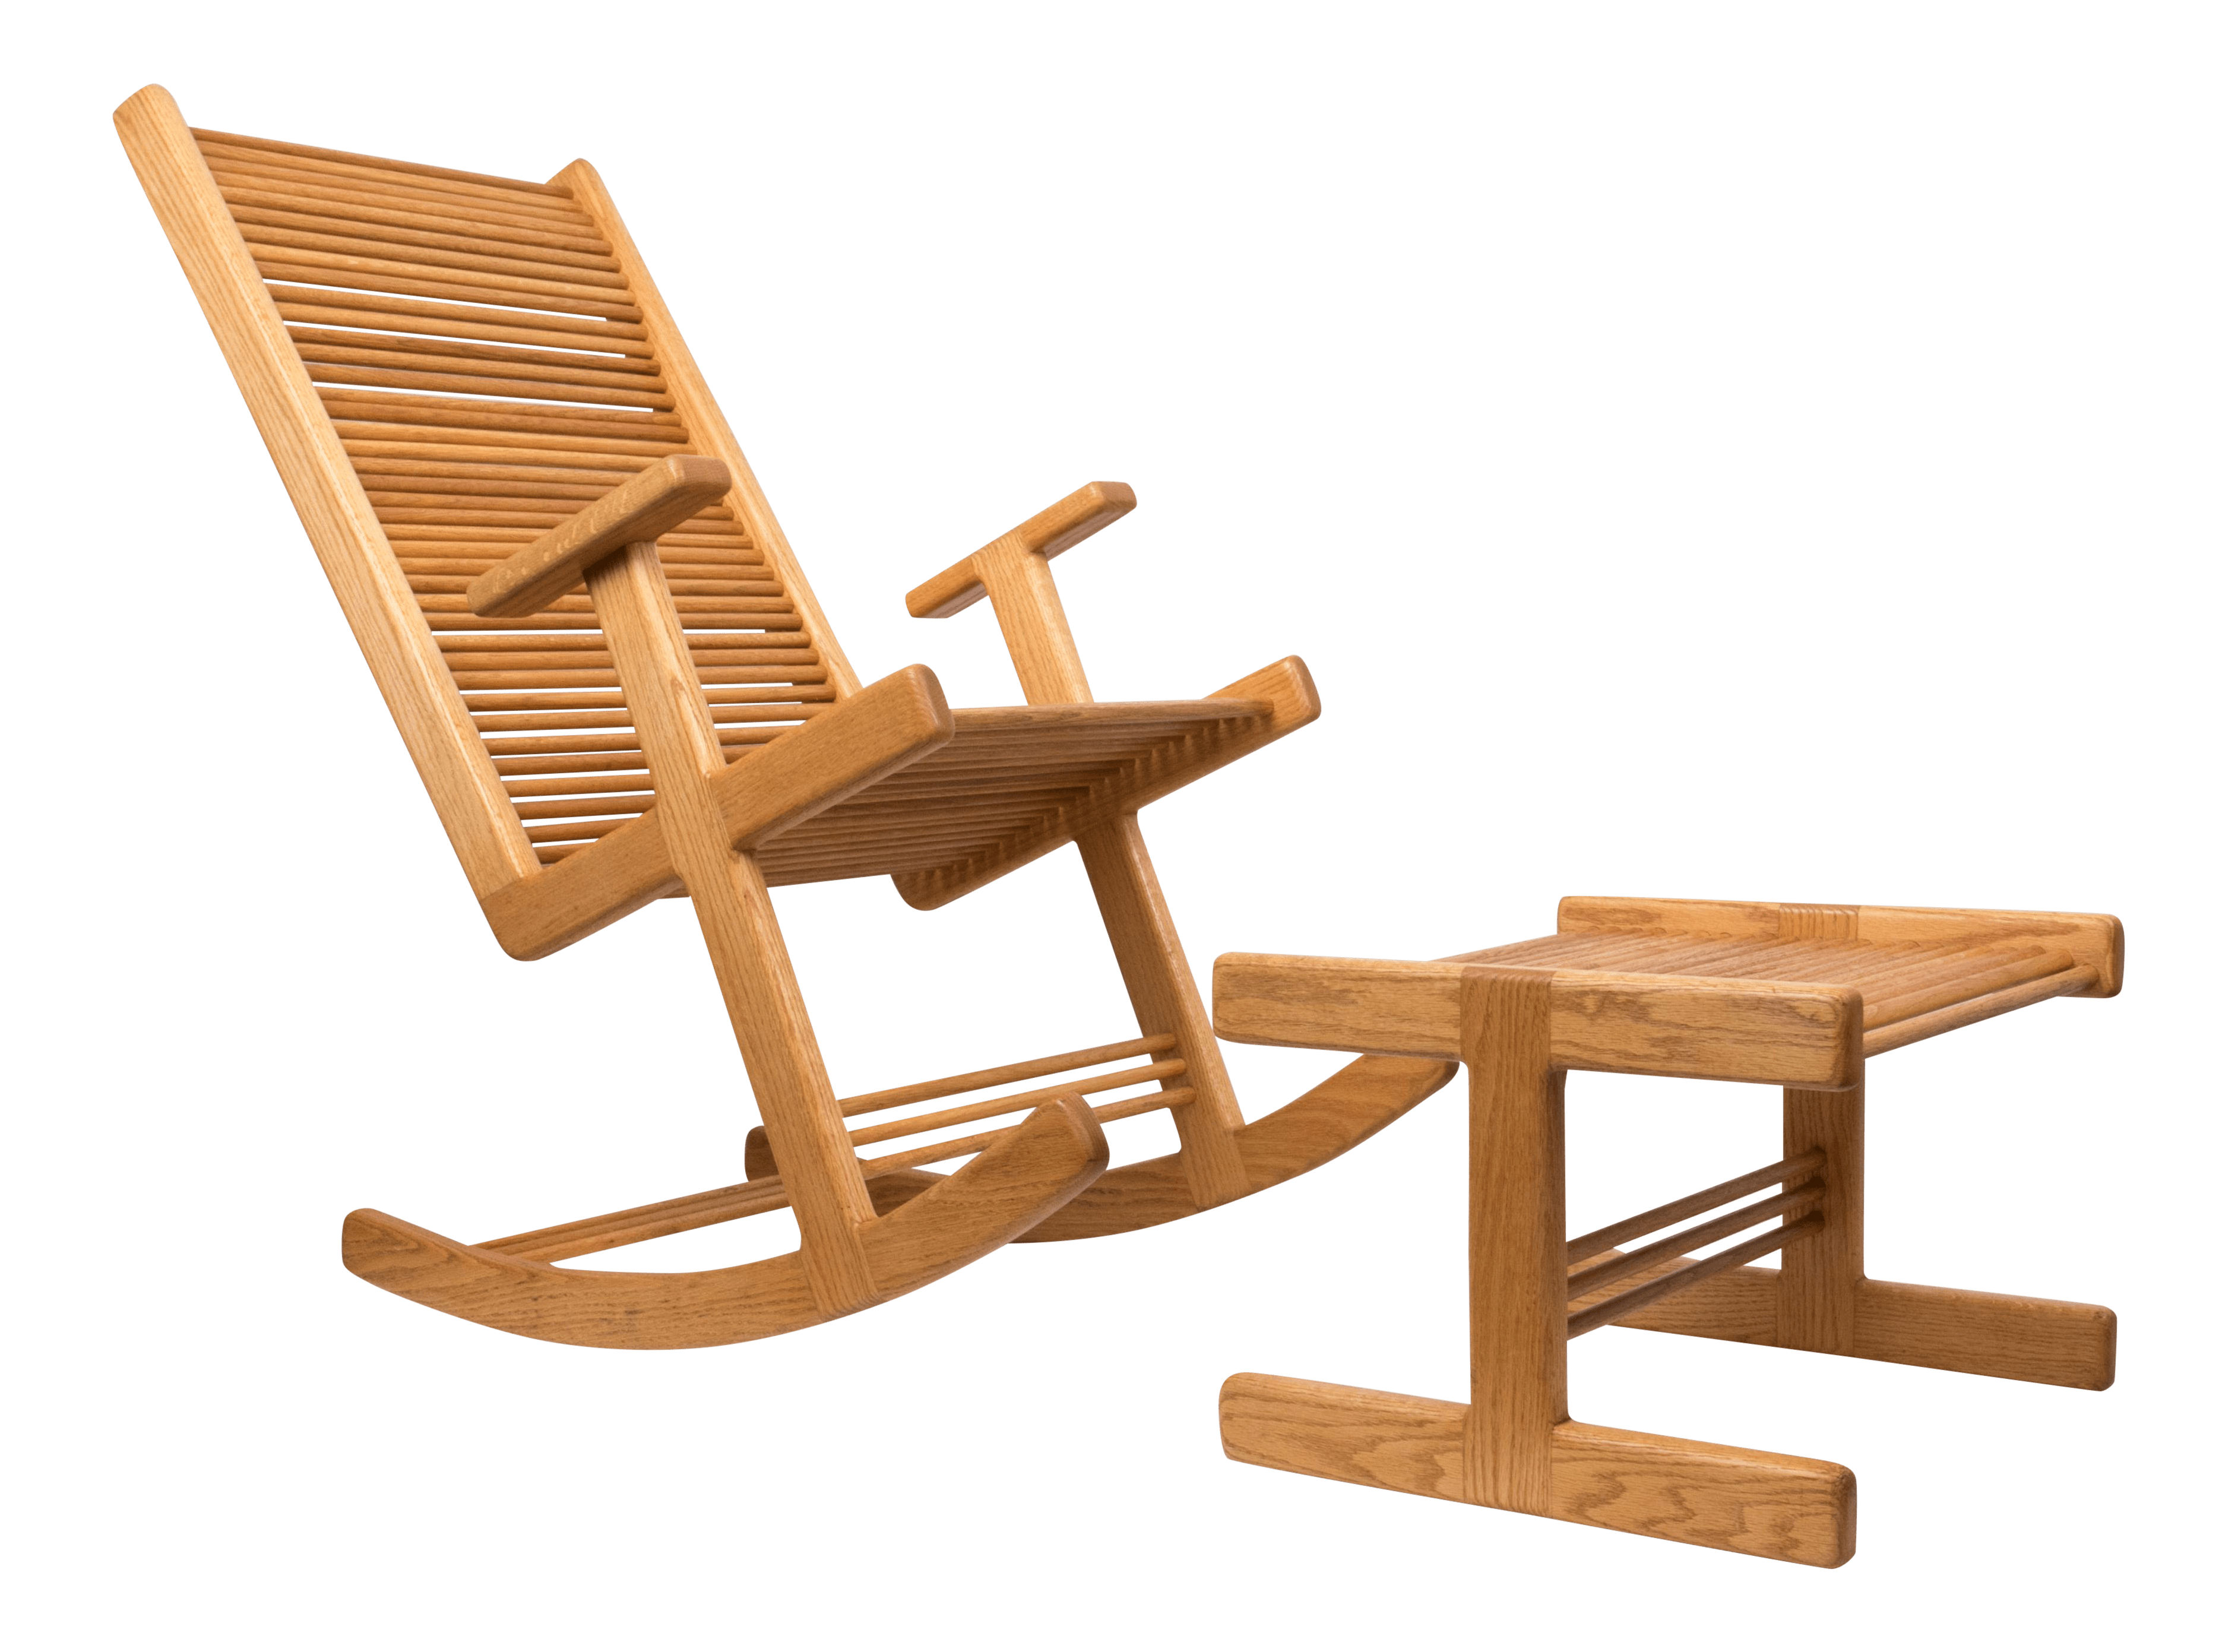 rocking chair footrest gym workout youtube vintage used mid century modern chairs chairish 1980s stephen hynson oak dowel and ottoman